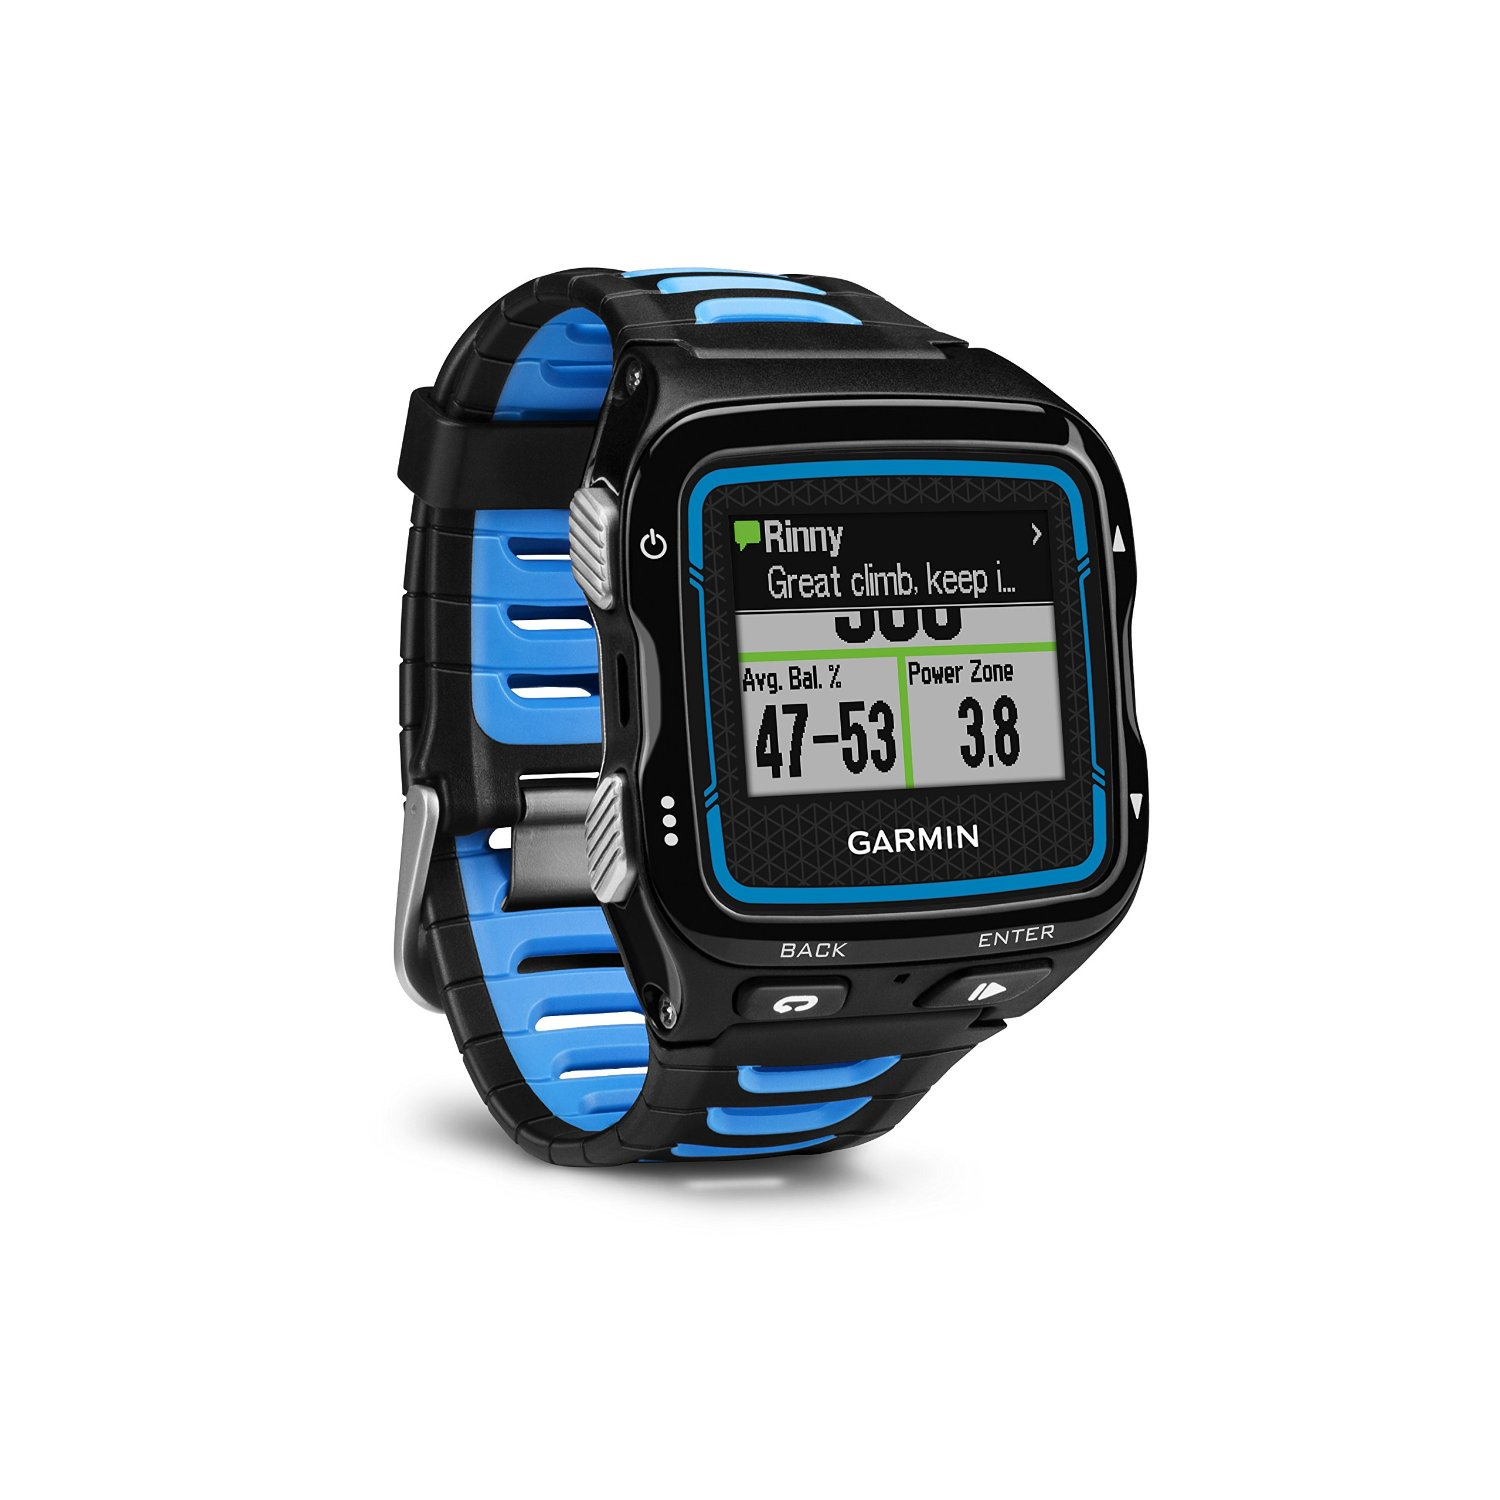 workout and pocket tomtom points lint fitness planning introduces watches news trackers better update